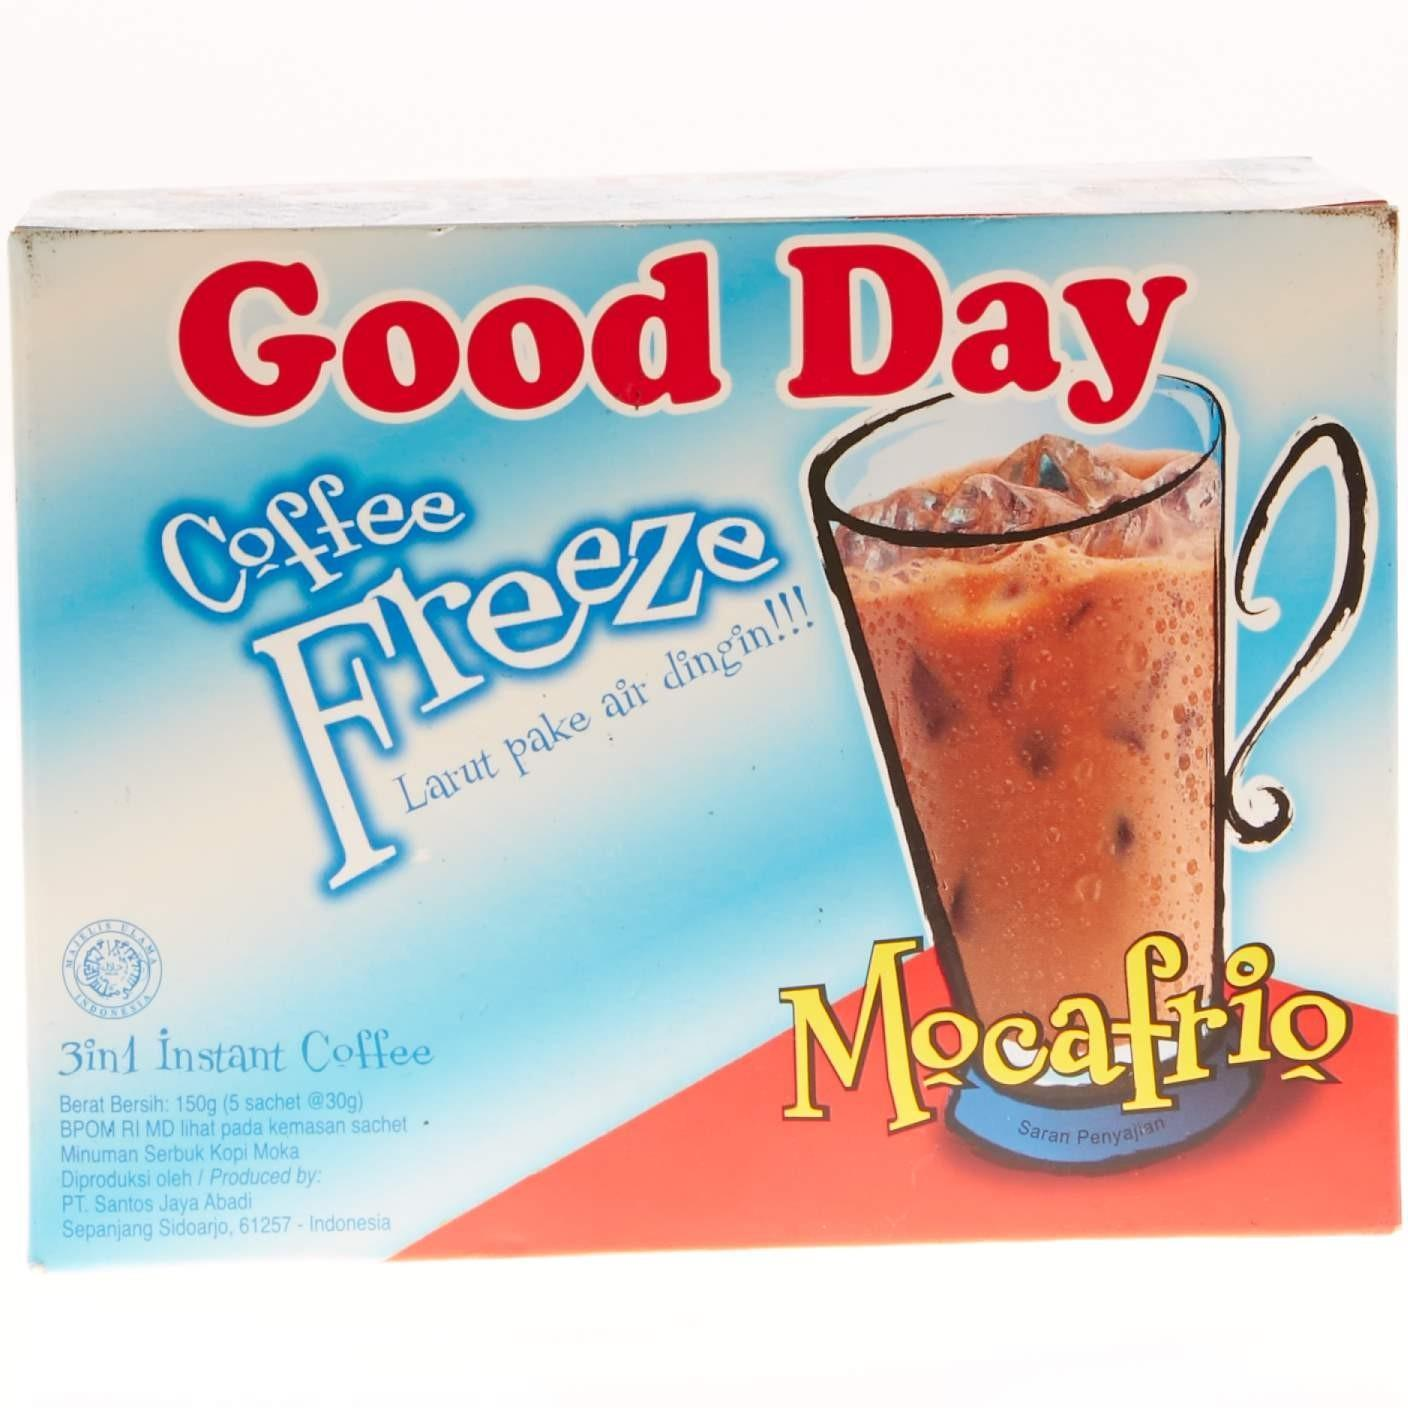 Buy Sell Cheapest 1 X Kopi Best Quality Product Deals Indonesian Old Town White Coffee 2 In Creamer 15s 25g Oldtown Good Day 3 Freeze Mocafrio 5 30gr